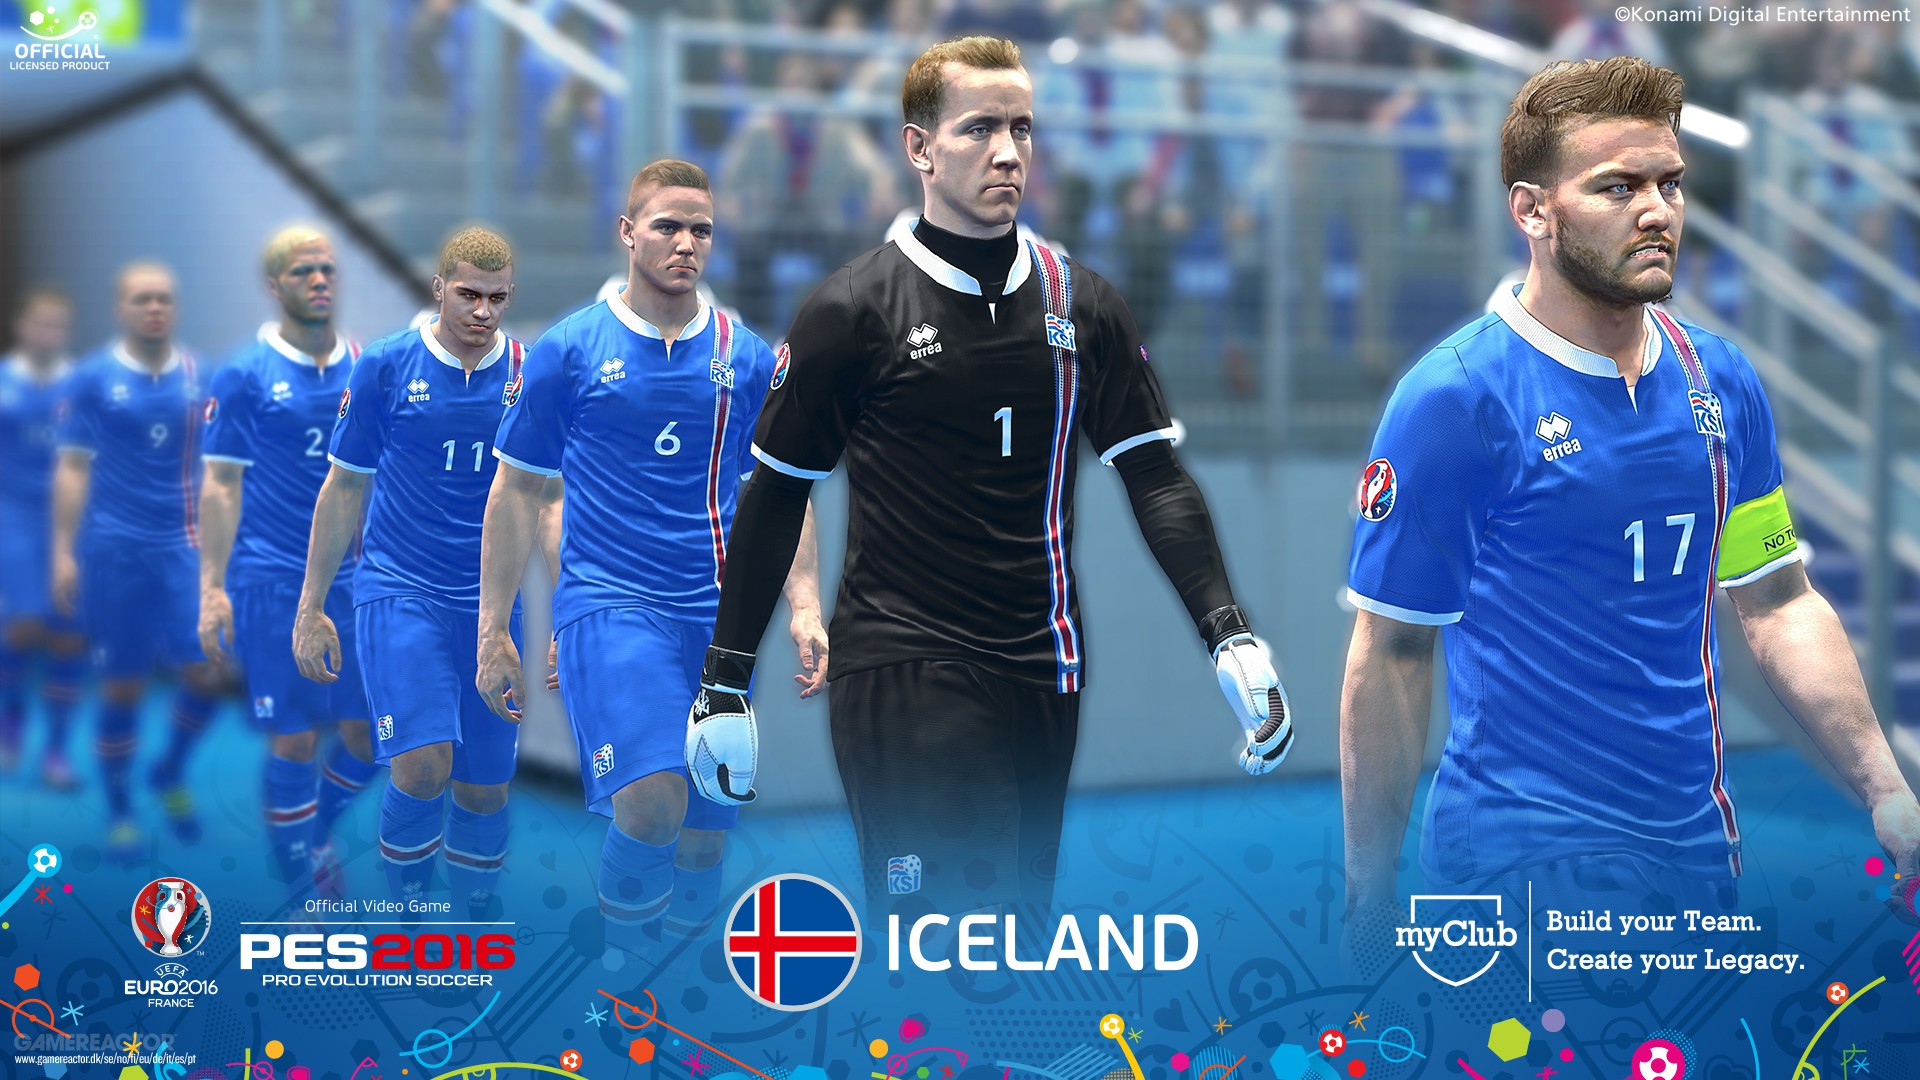 498d46f967 Pictures of The UEFA EURO 2016 version of PES 2016 is out now 5 20